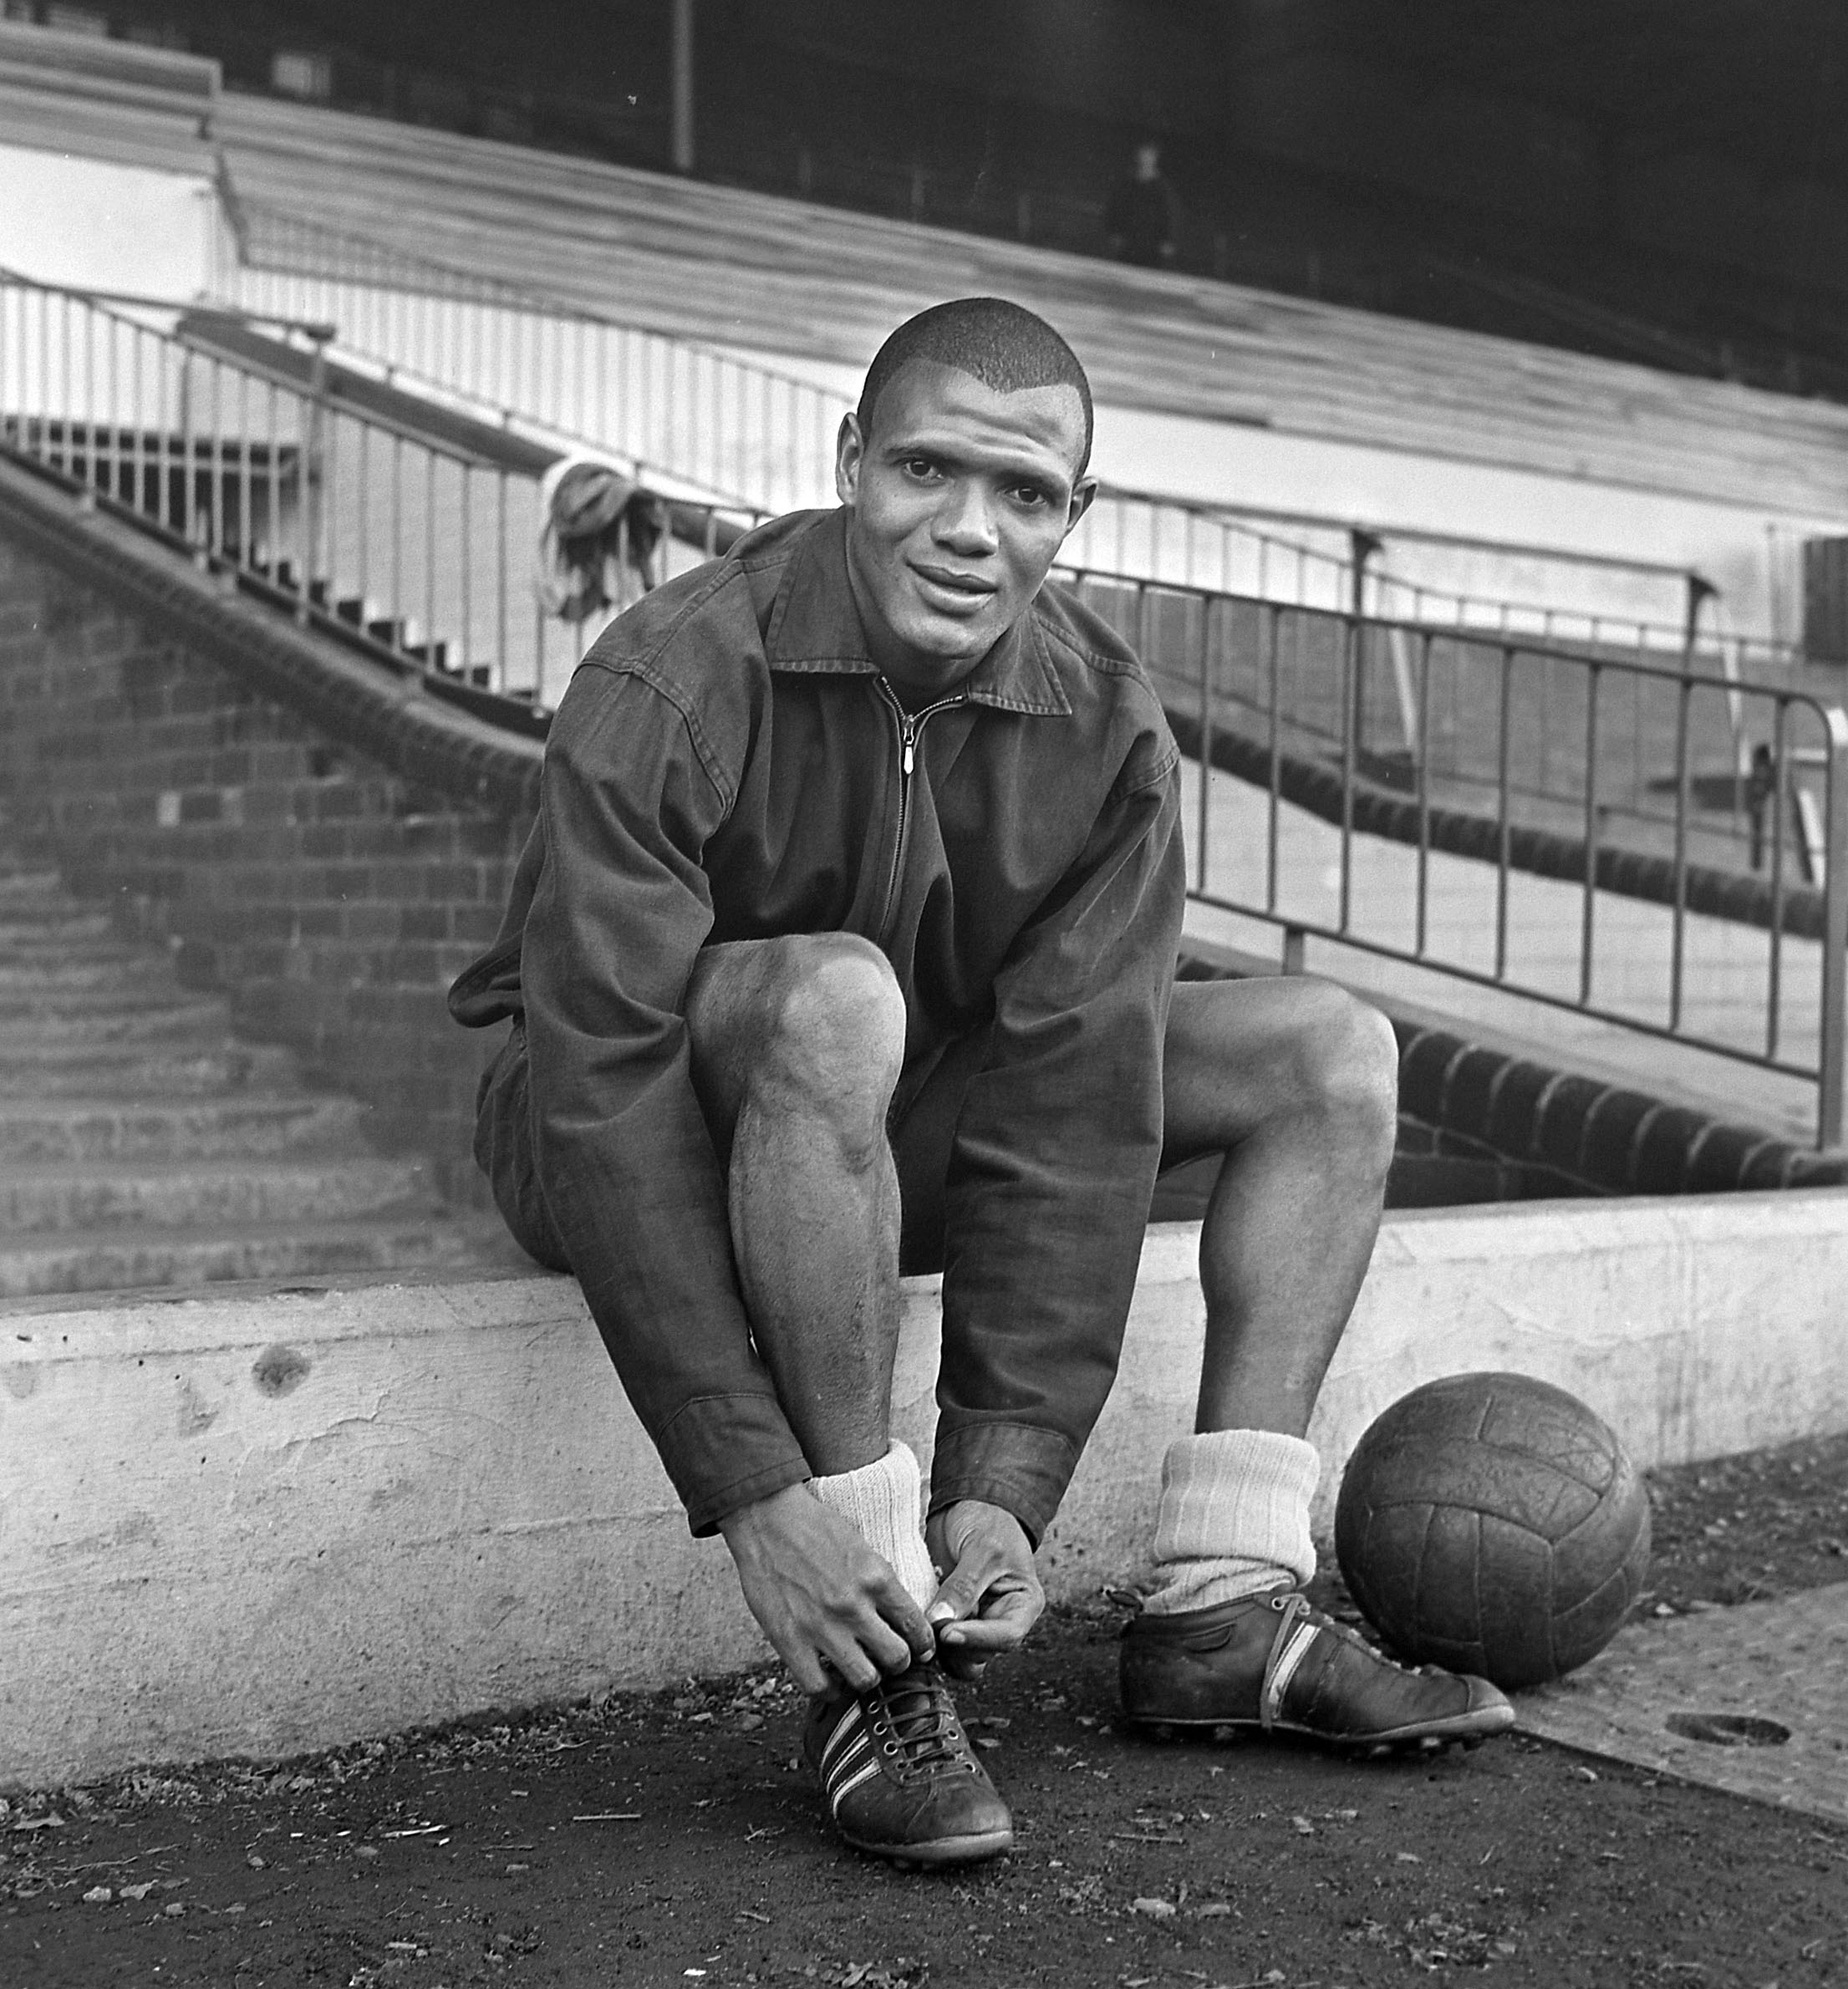 Black and white photograph of Albert sitting on some steps tying up his football boots